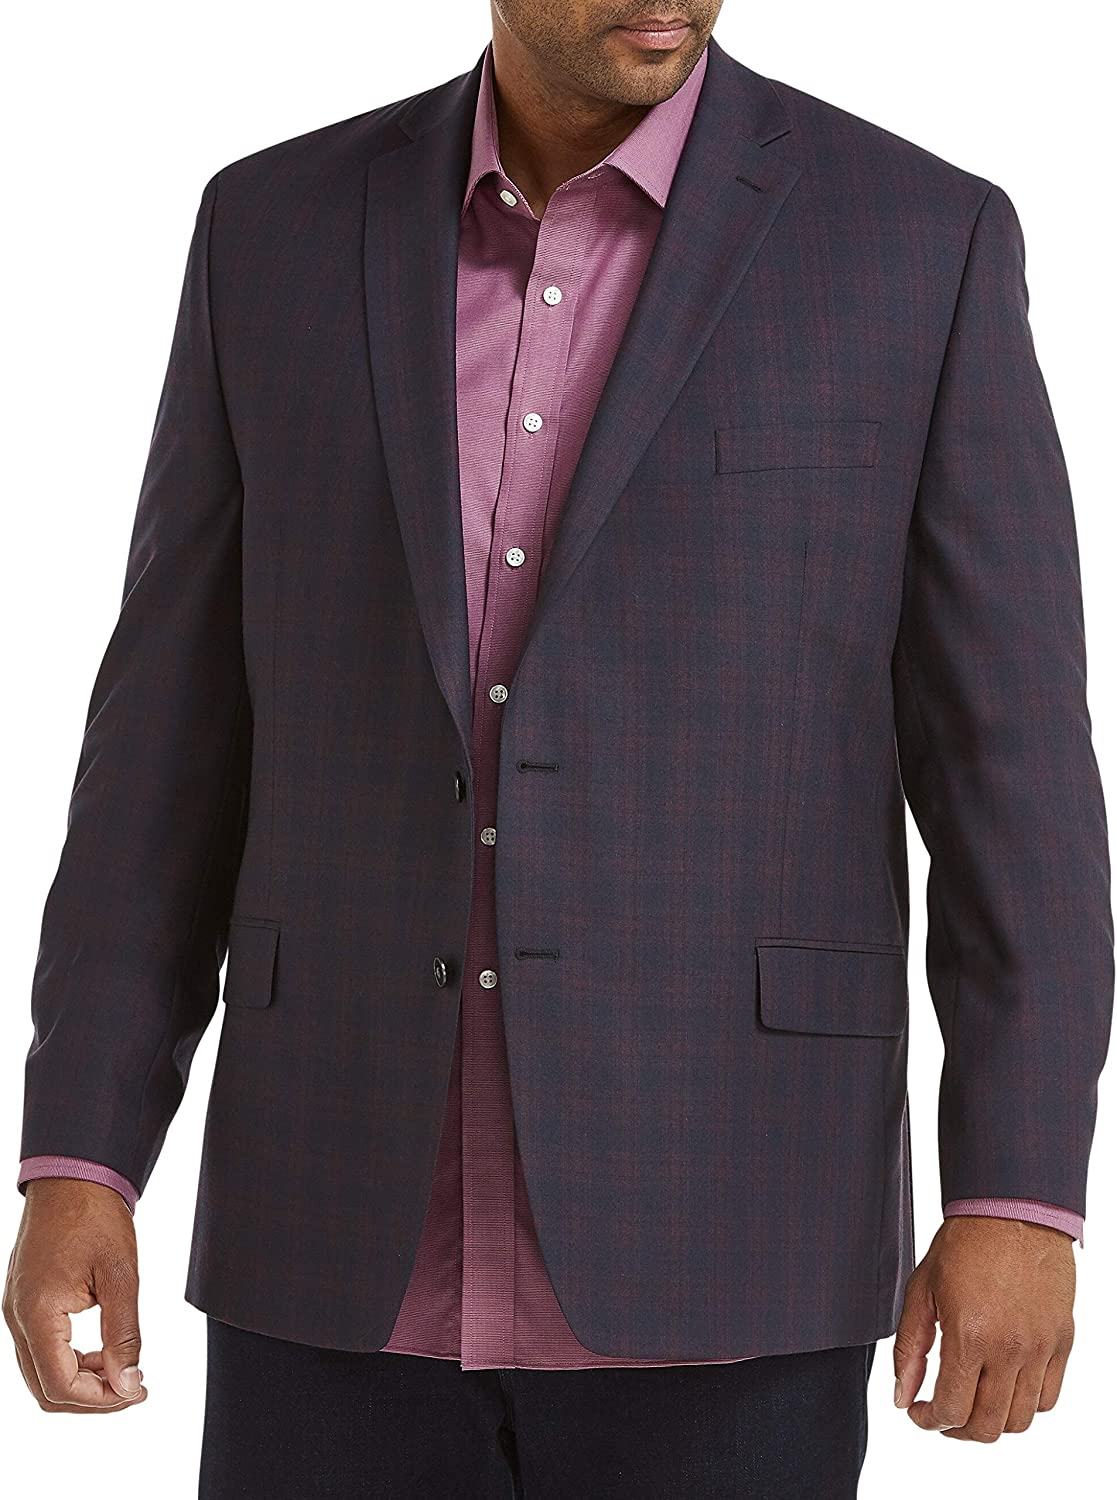 Michael Kors Plaid Sport Coat Free shipping anywhere in the nation Cheap SALE Start Berry